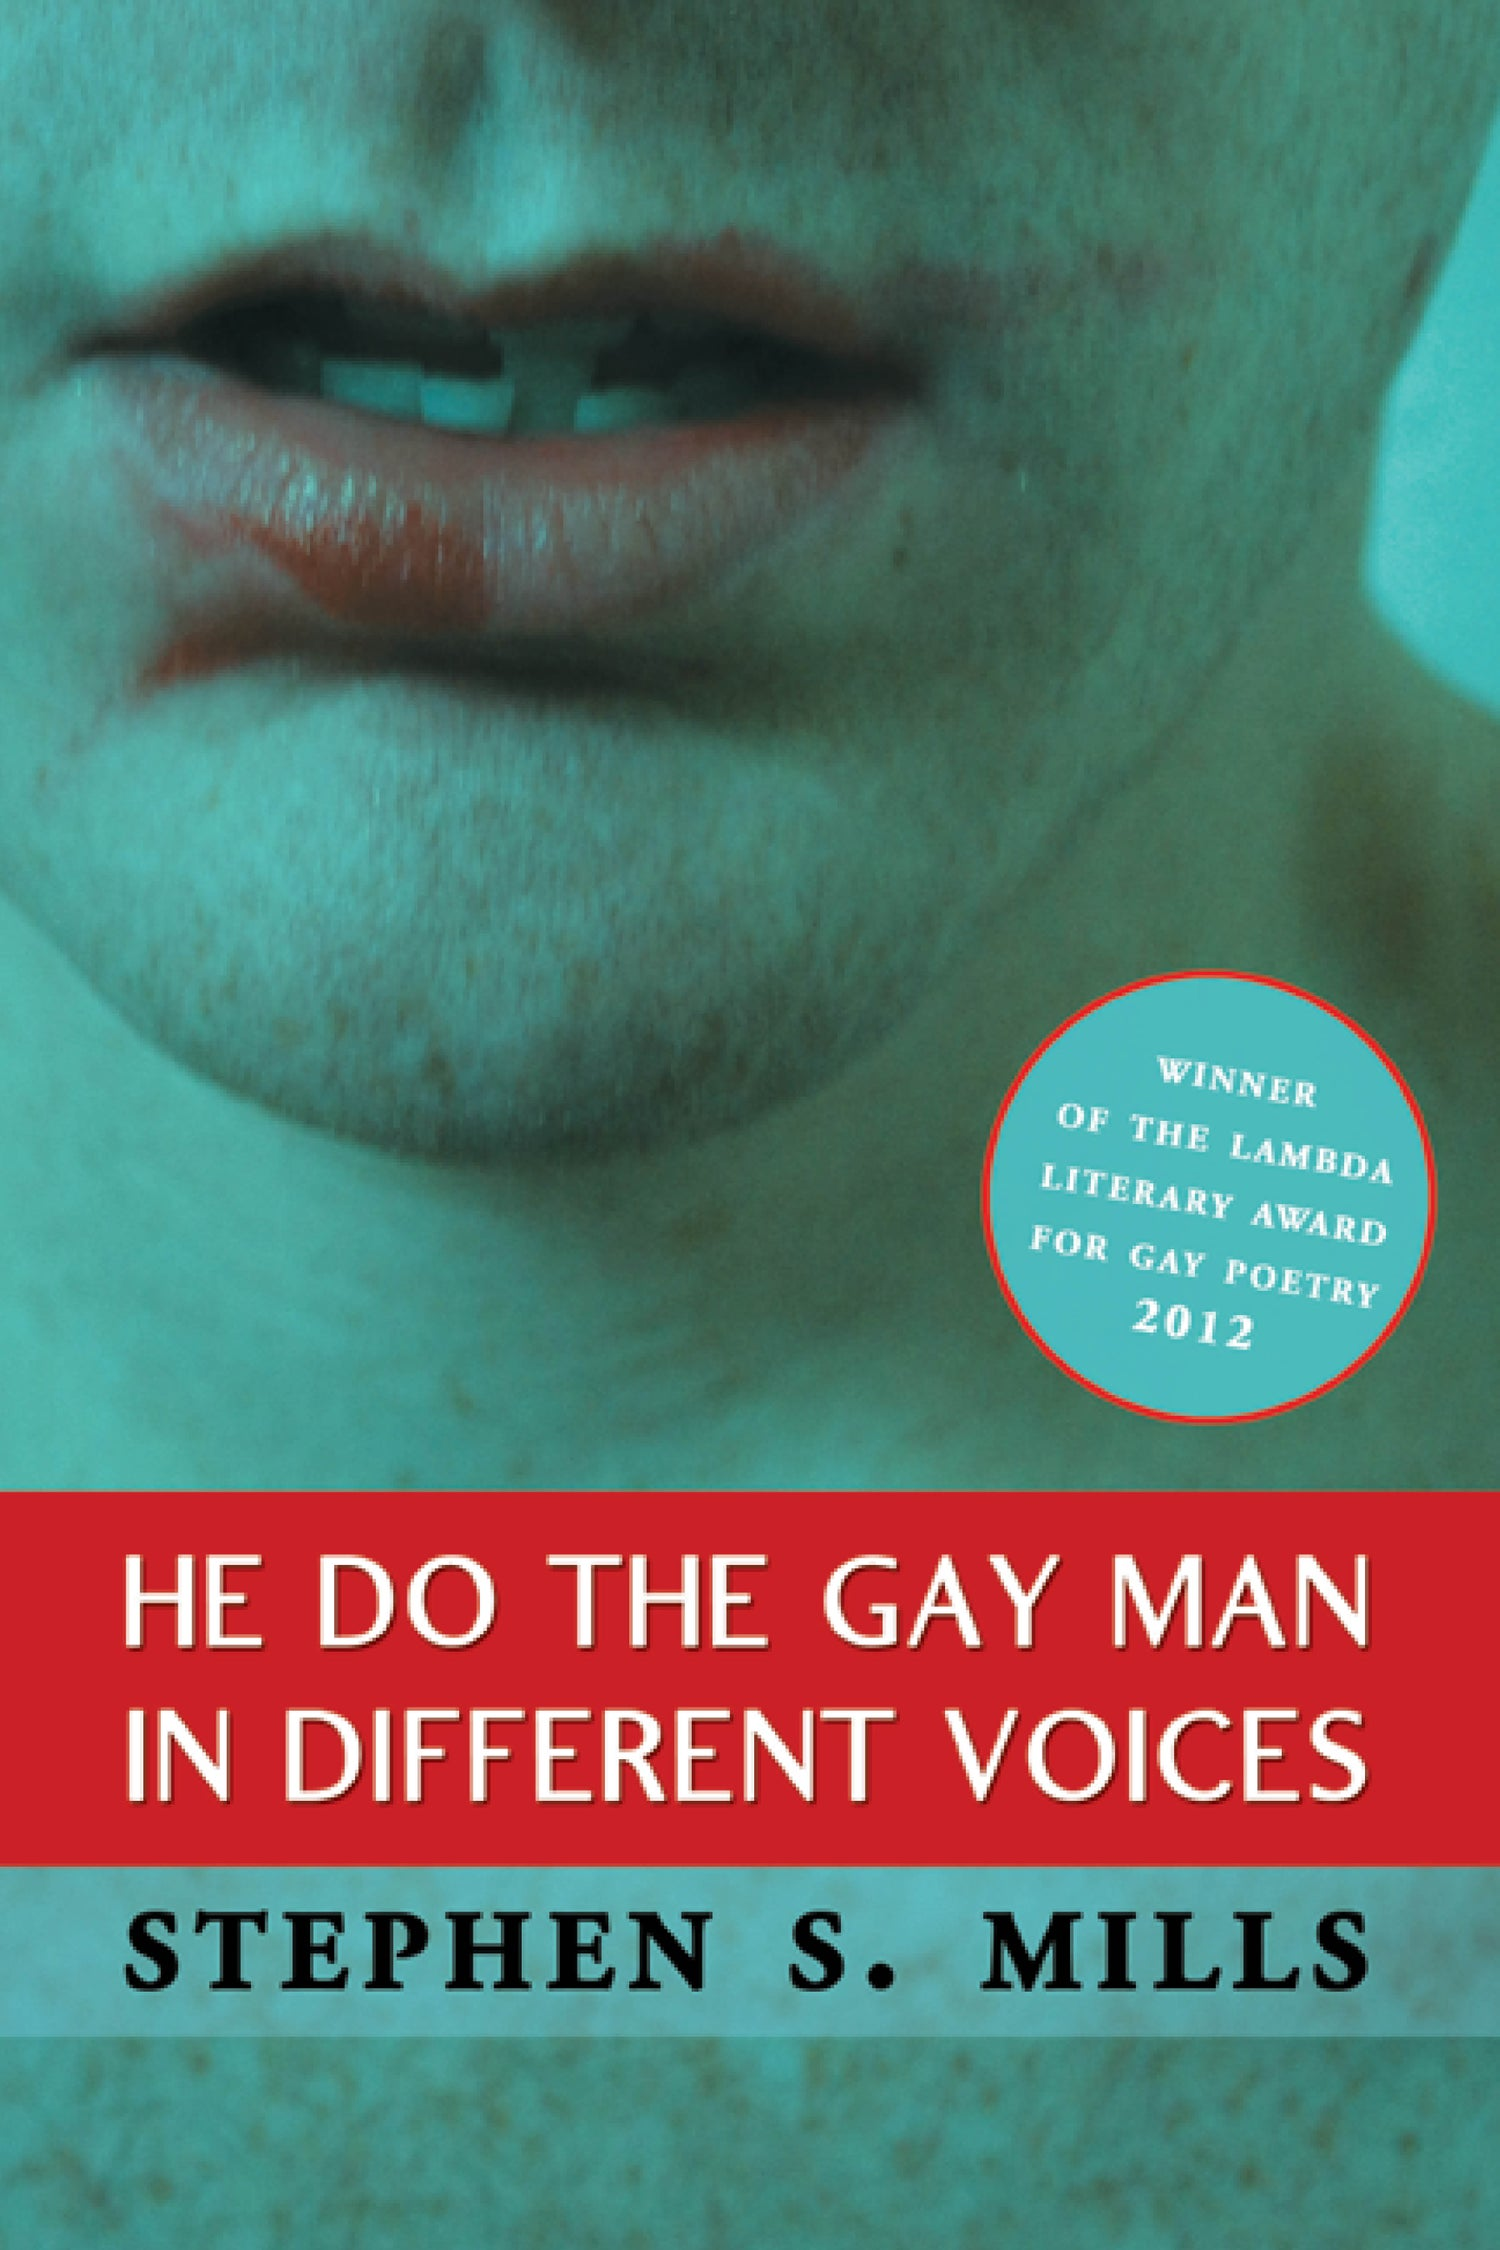 Image of LAMBDA LITERARY AWARD WINNER: He Do the Gay Man in Different Voices by Stephen S. Mills